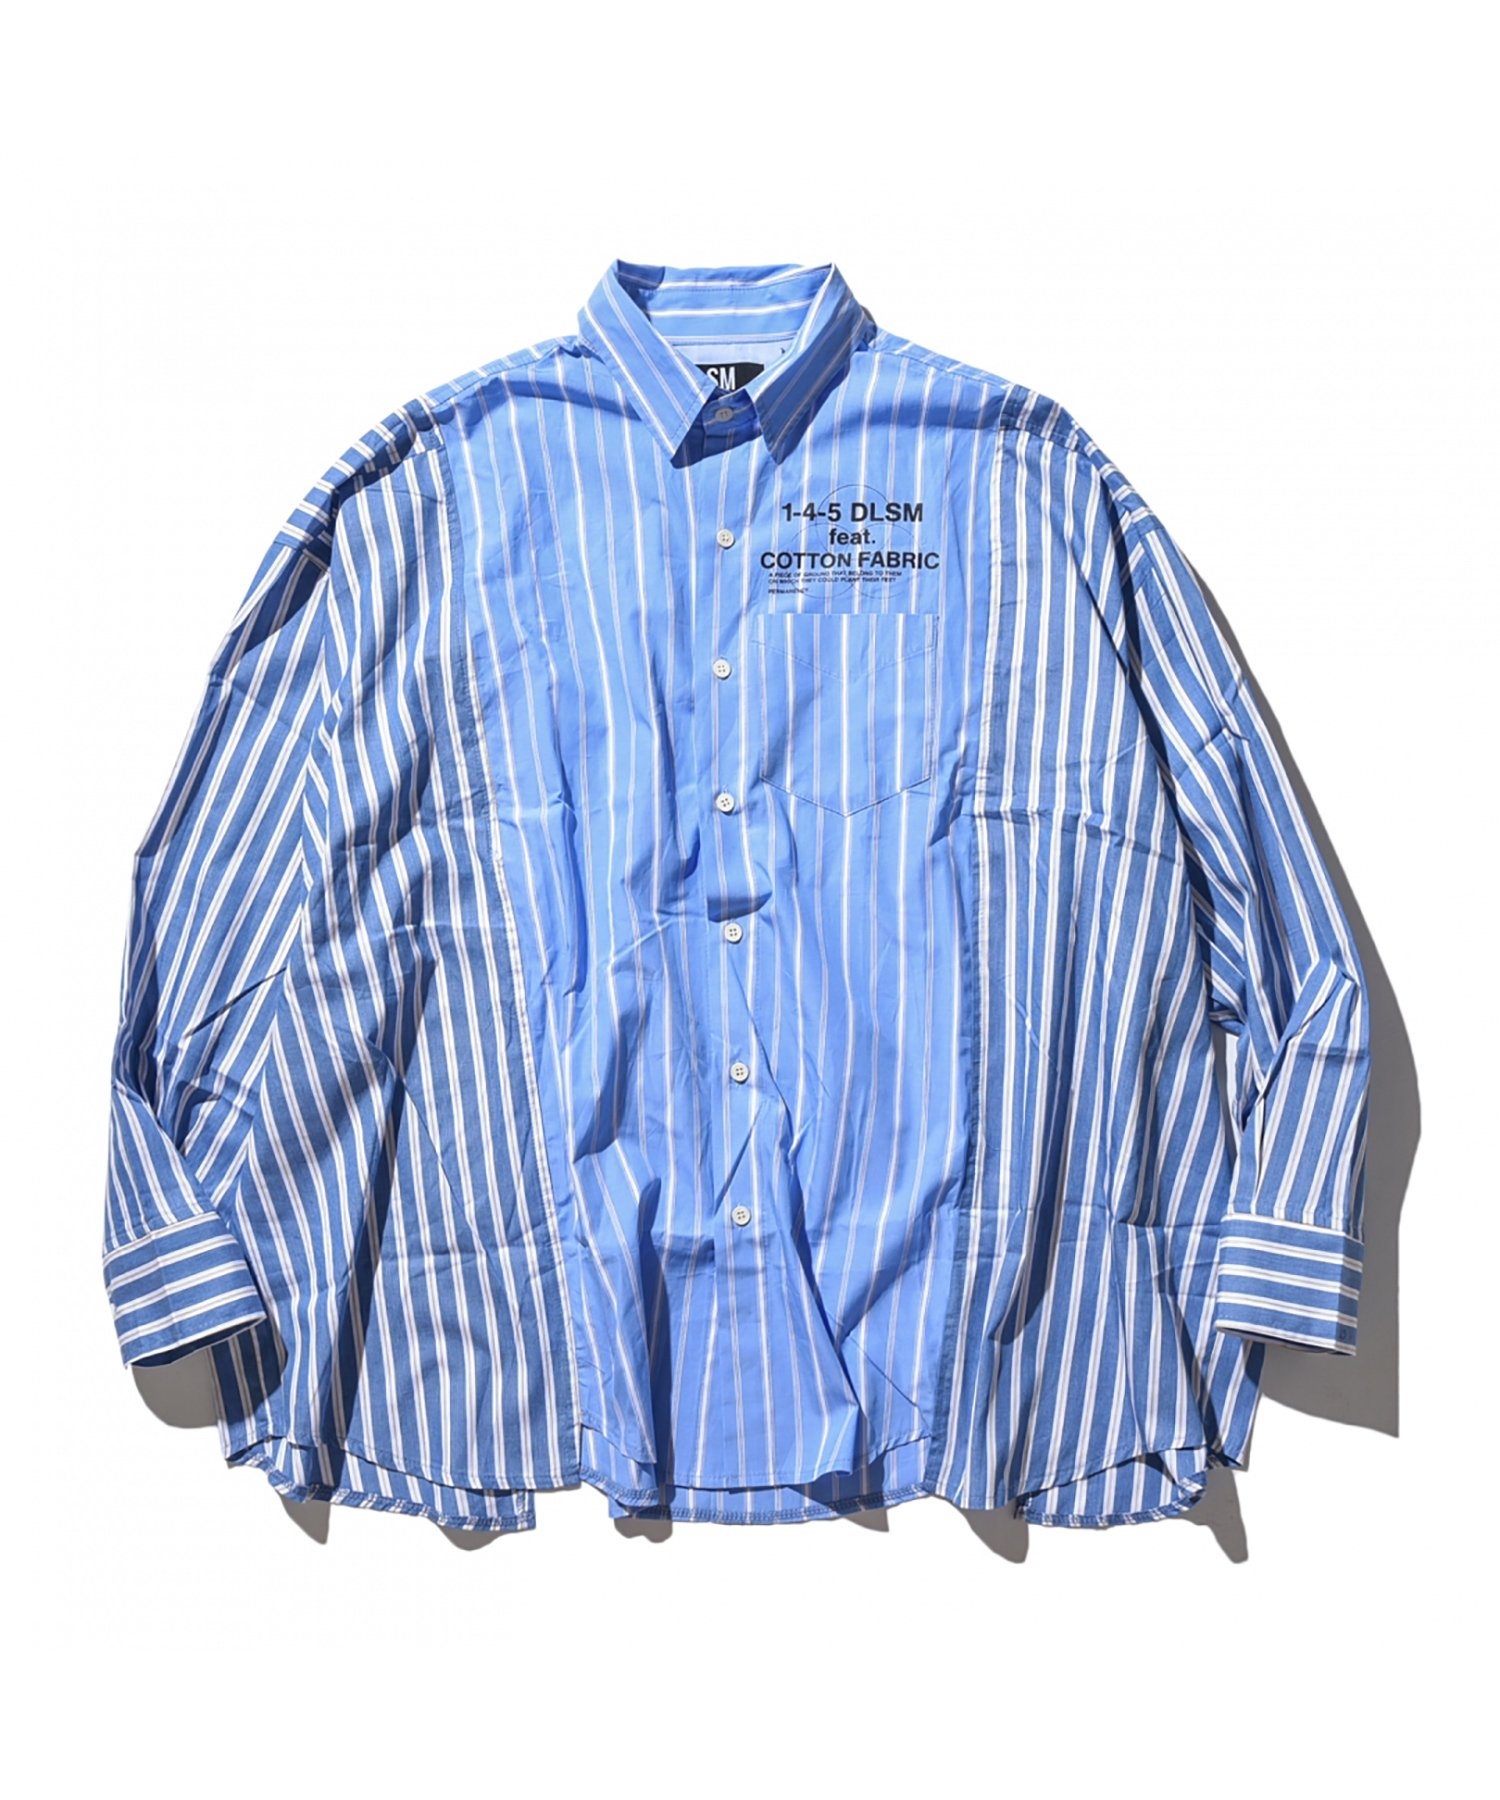 MIX STRIPE OVER SILHOUETTE SHIRT